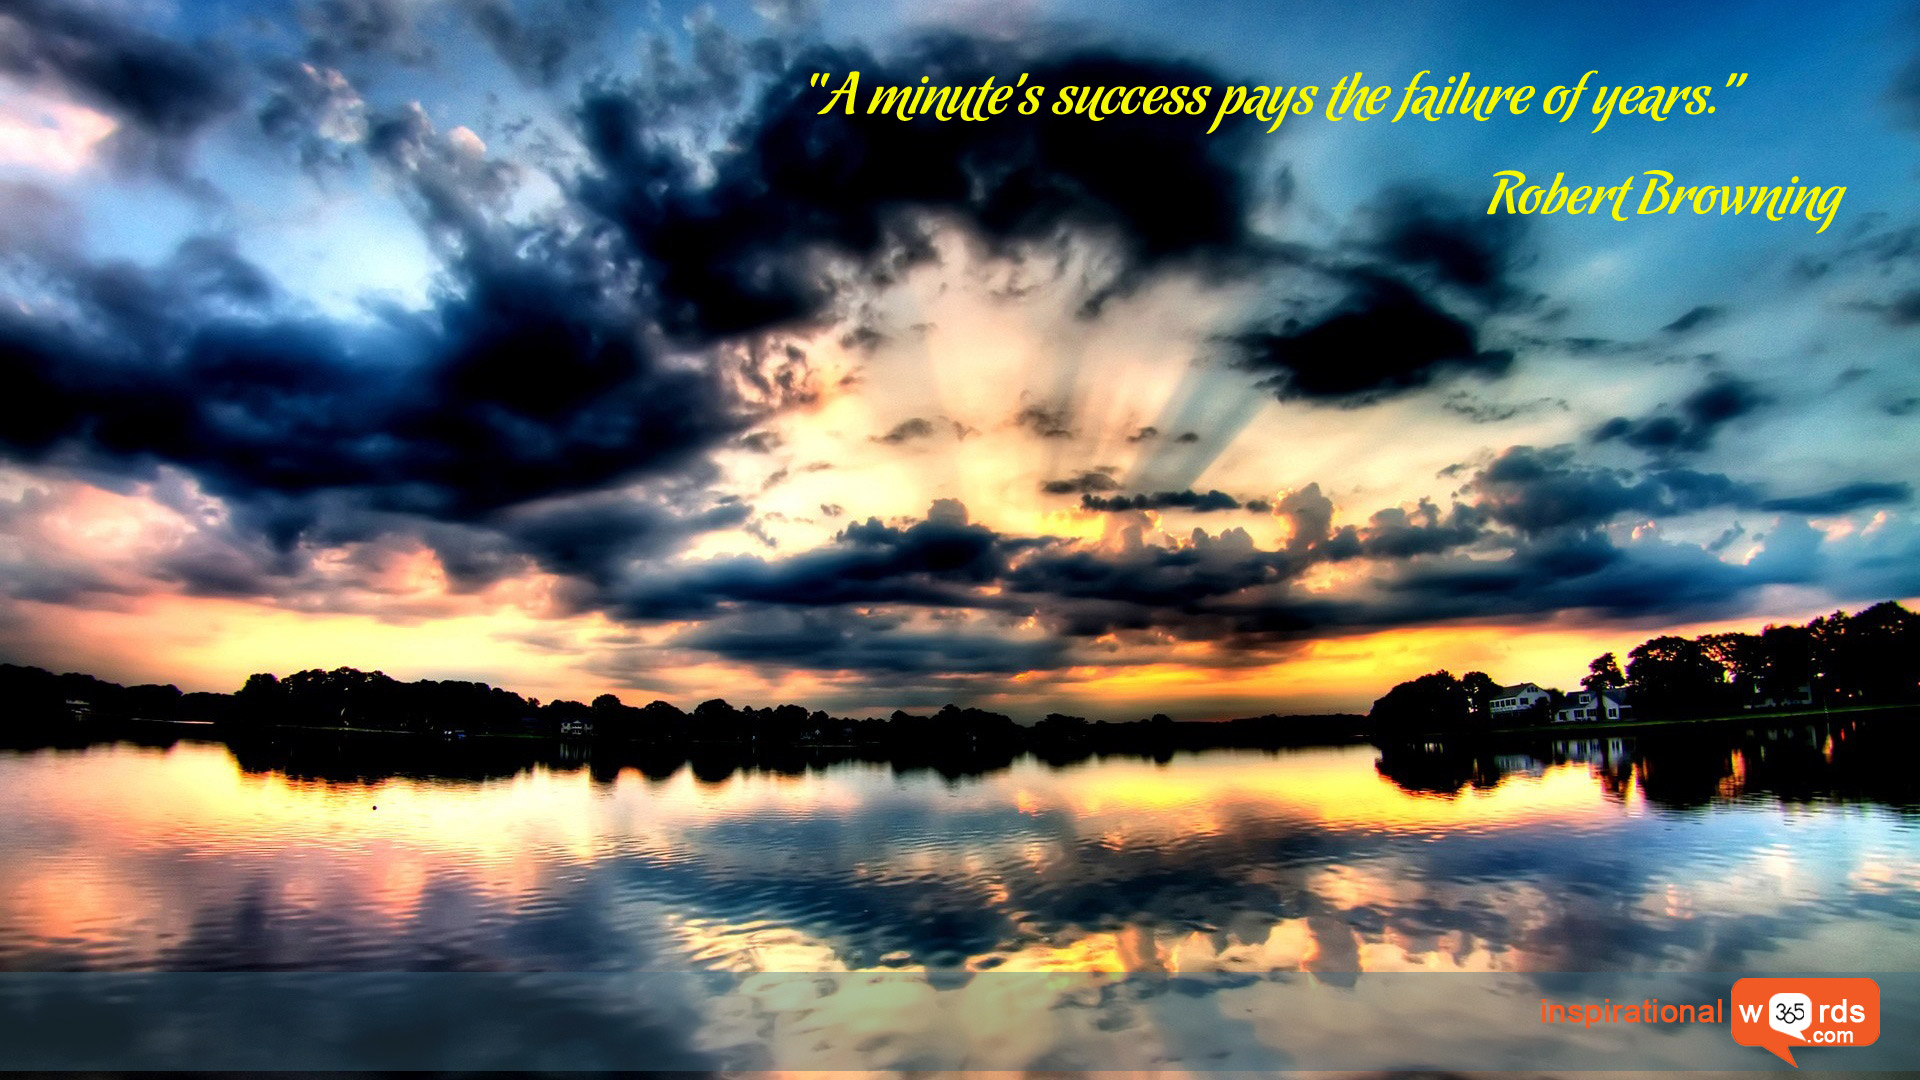 Inspirational Wallpaper Quote by Robert Browning